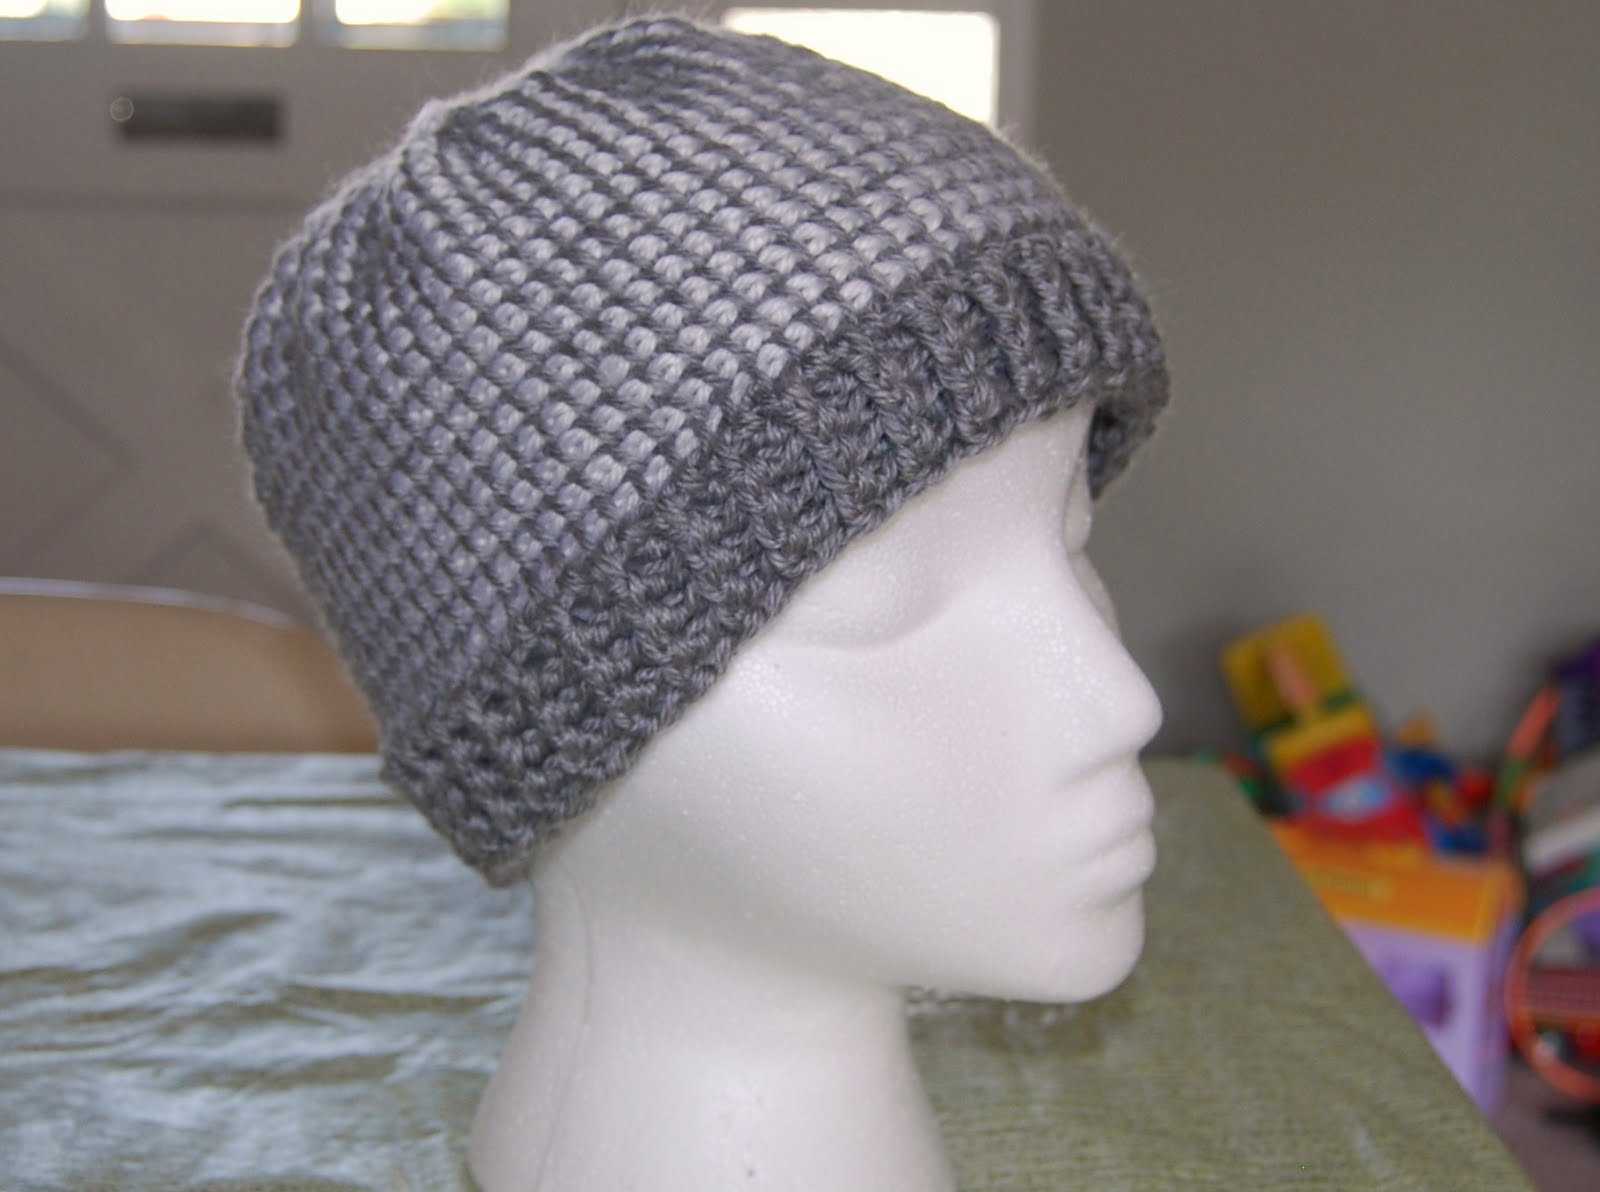 The Laughing Willow Ribbed Brim Tunisian Hat